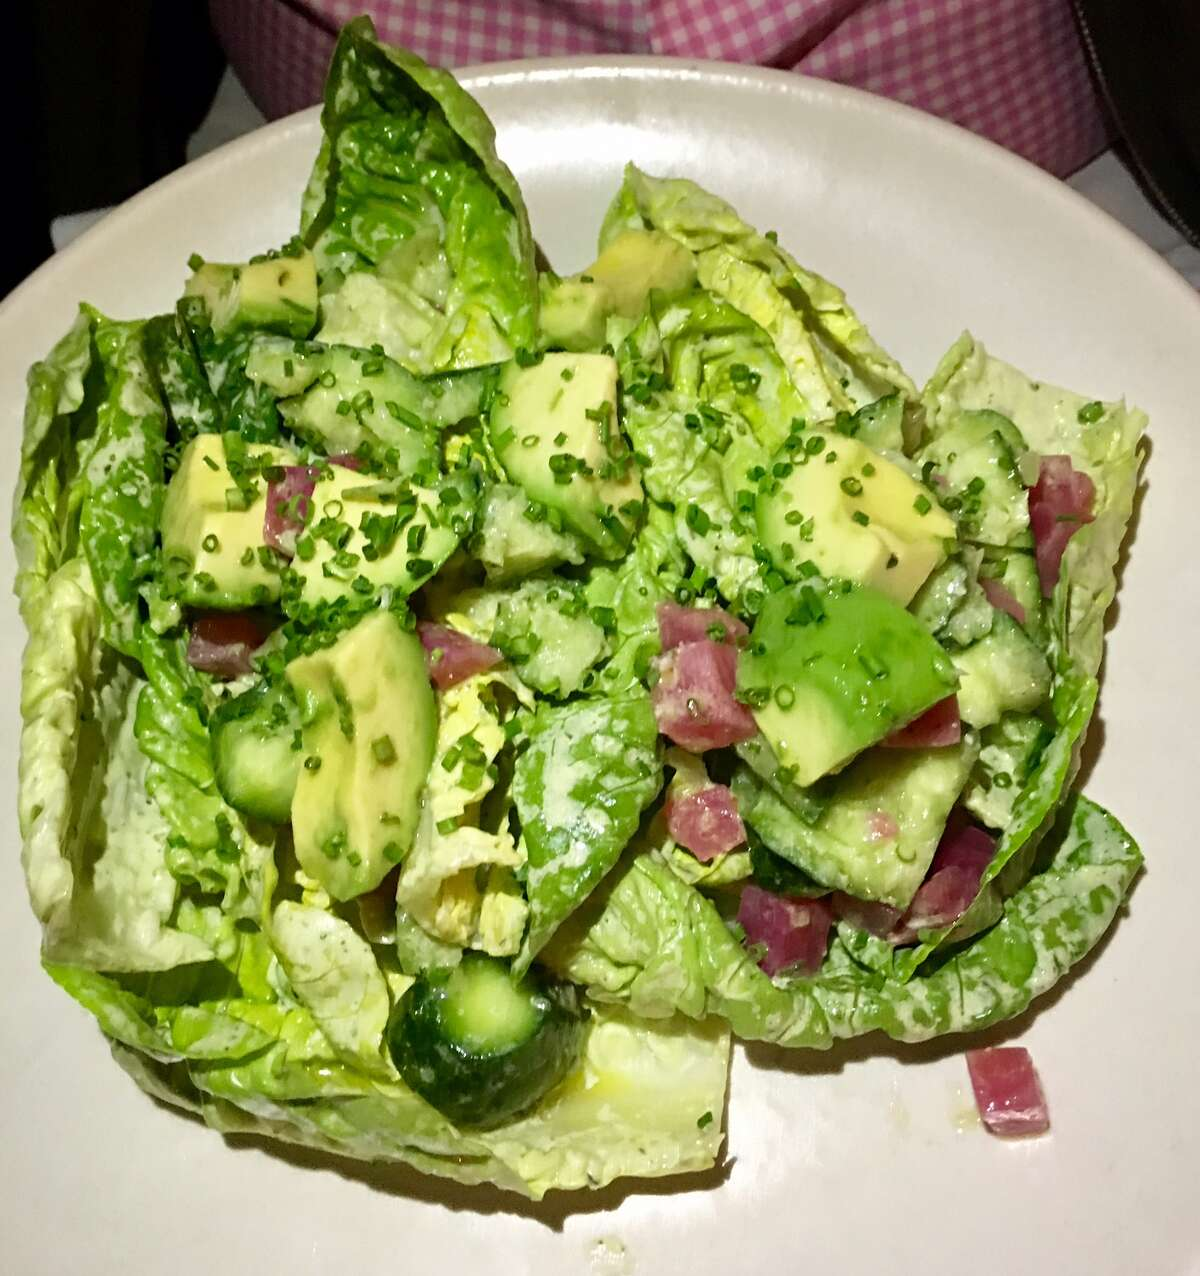 Little Gems with avocado, cucumber, and beets in a Green Goddess dressing ($14)